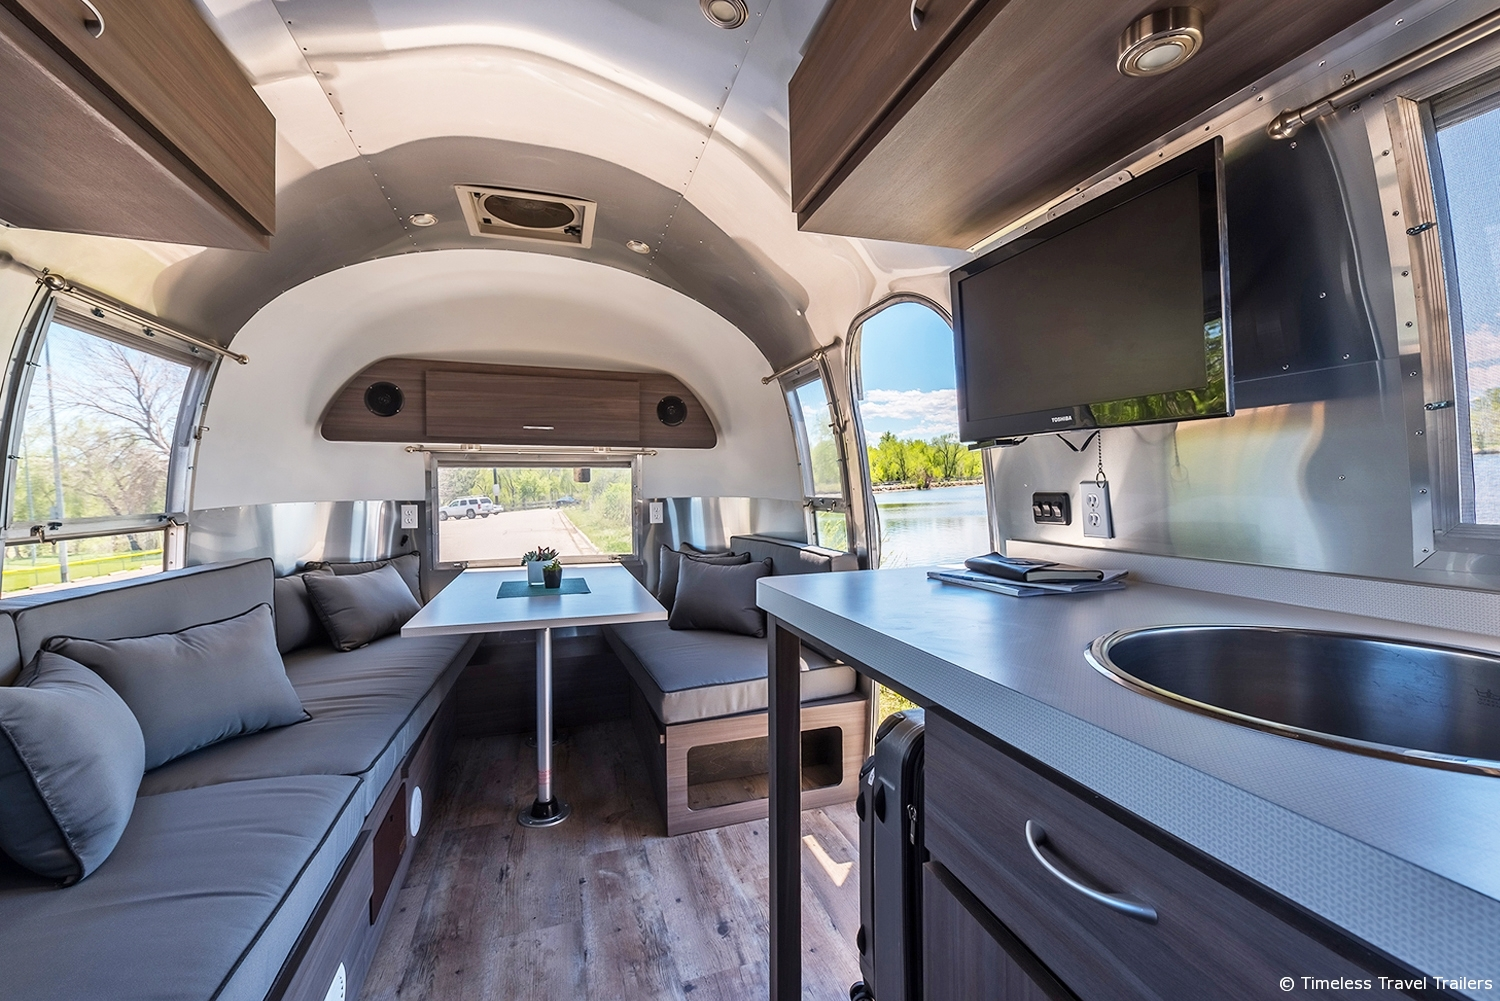 Best Travel Trailers 2017 >> Marble Airfield Guest Lodging by Timeless Travel Trailers